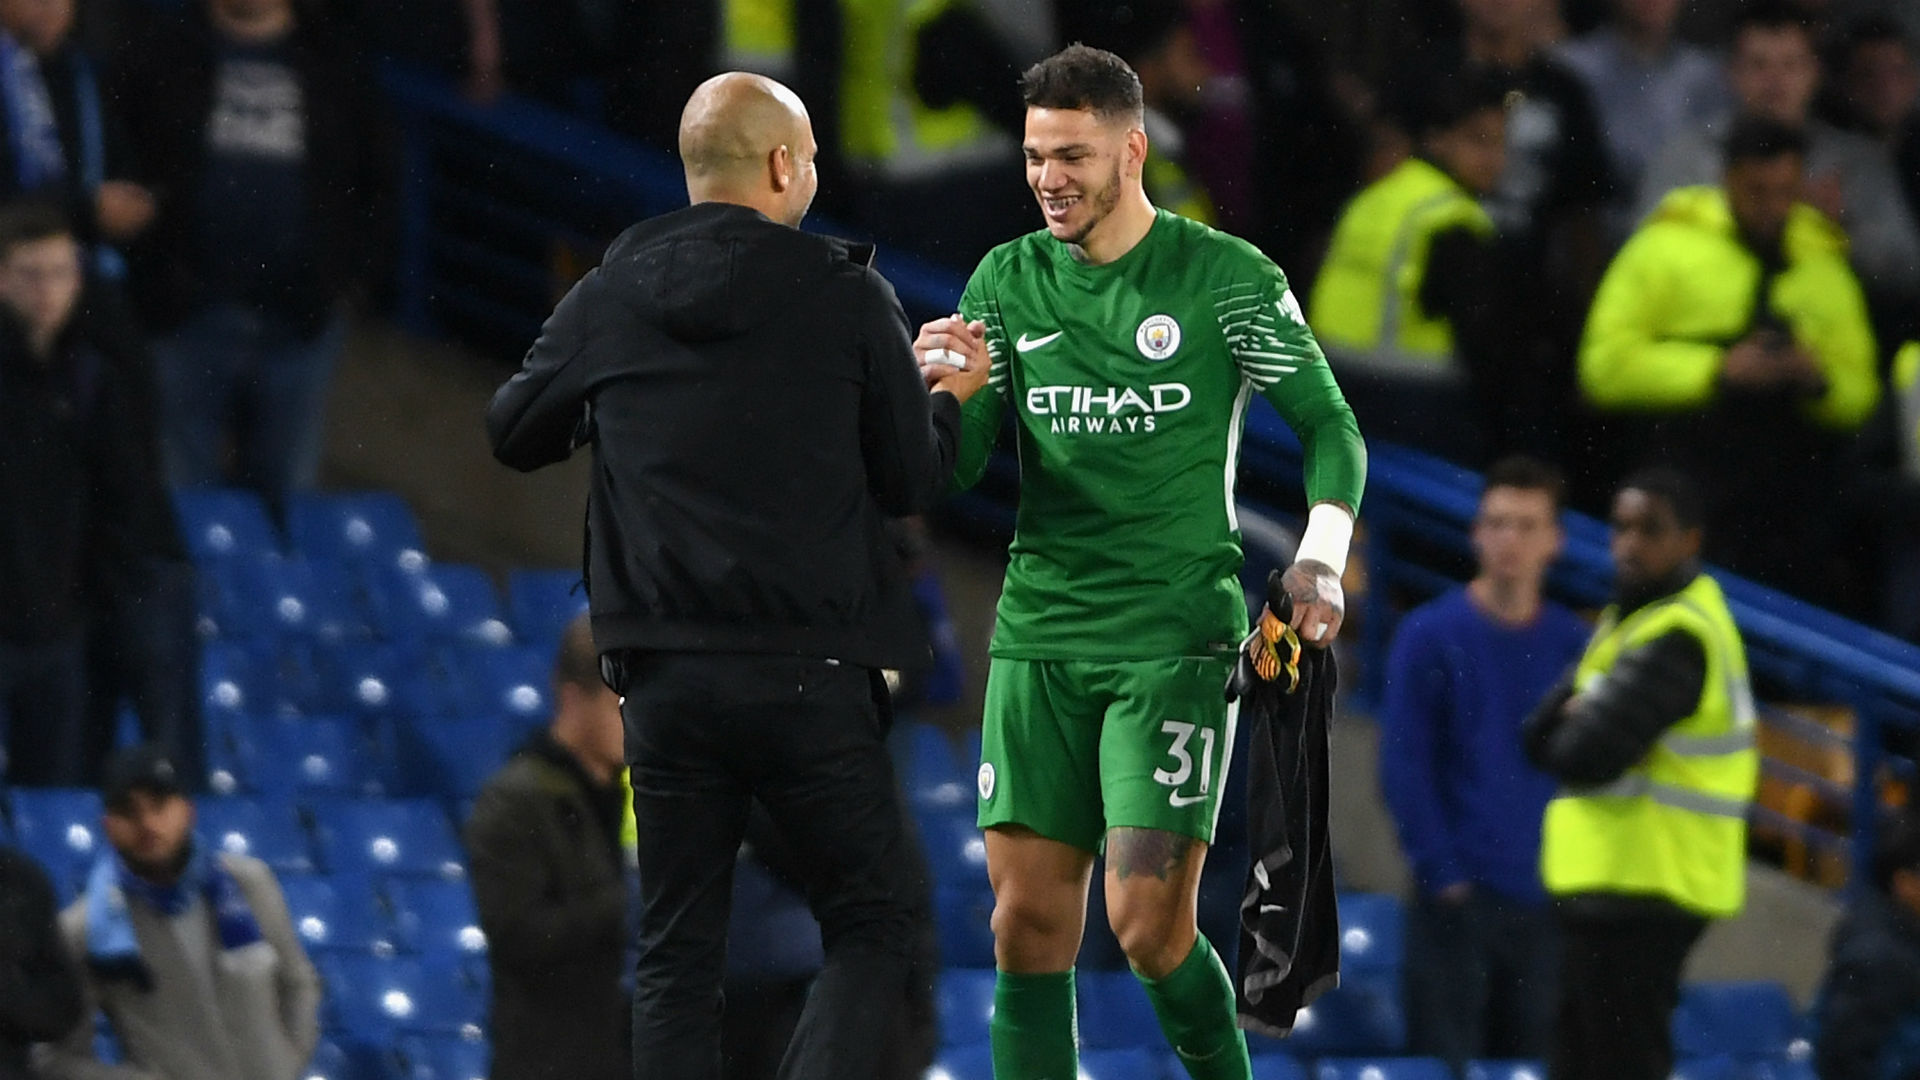 Pep Guardiola Ederson Manchester City